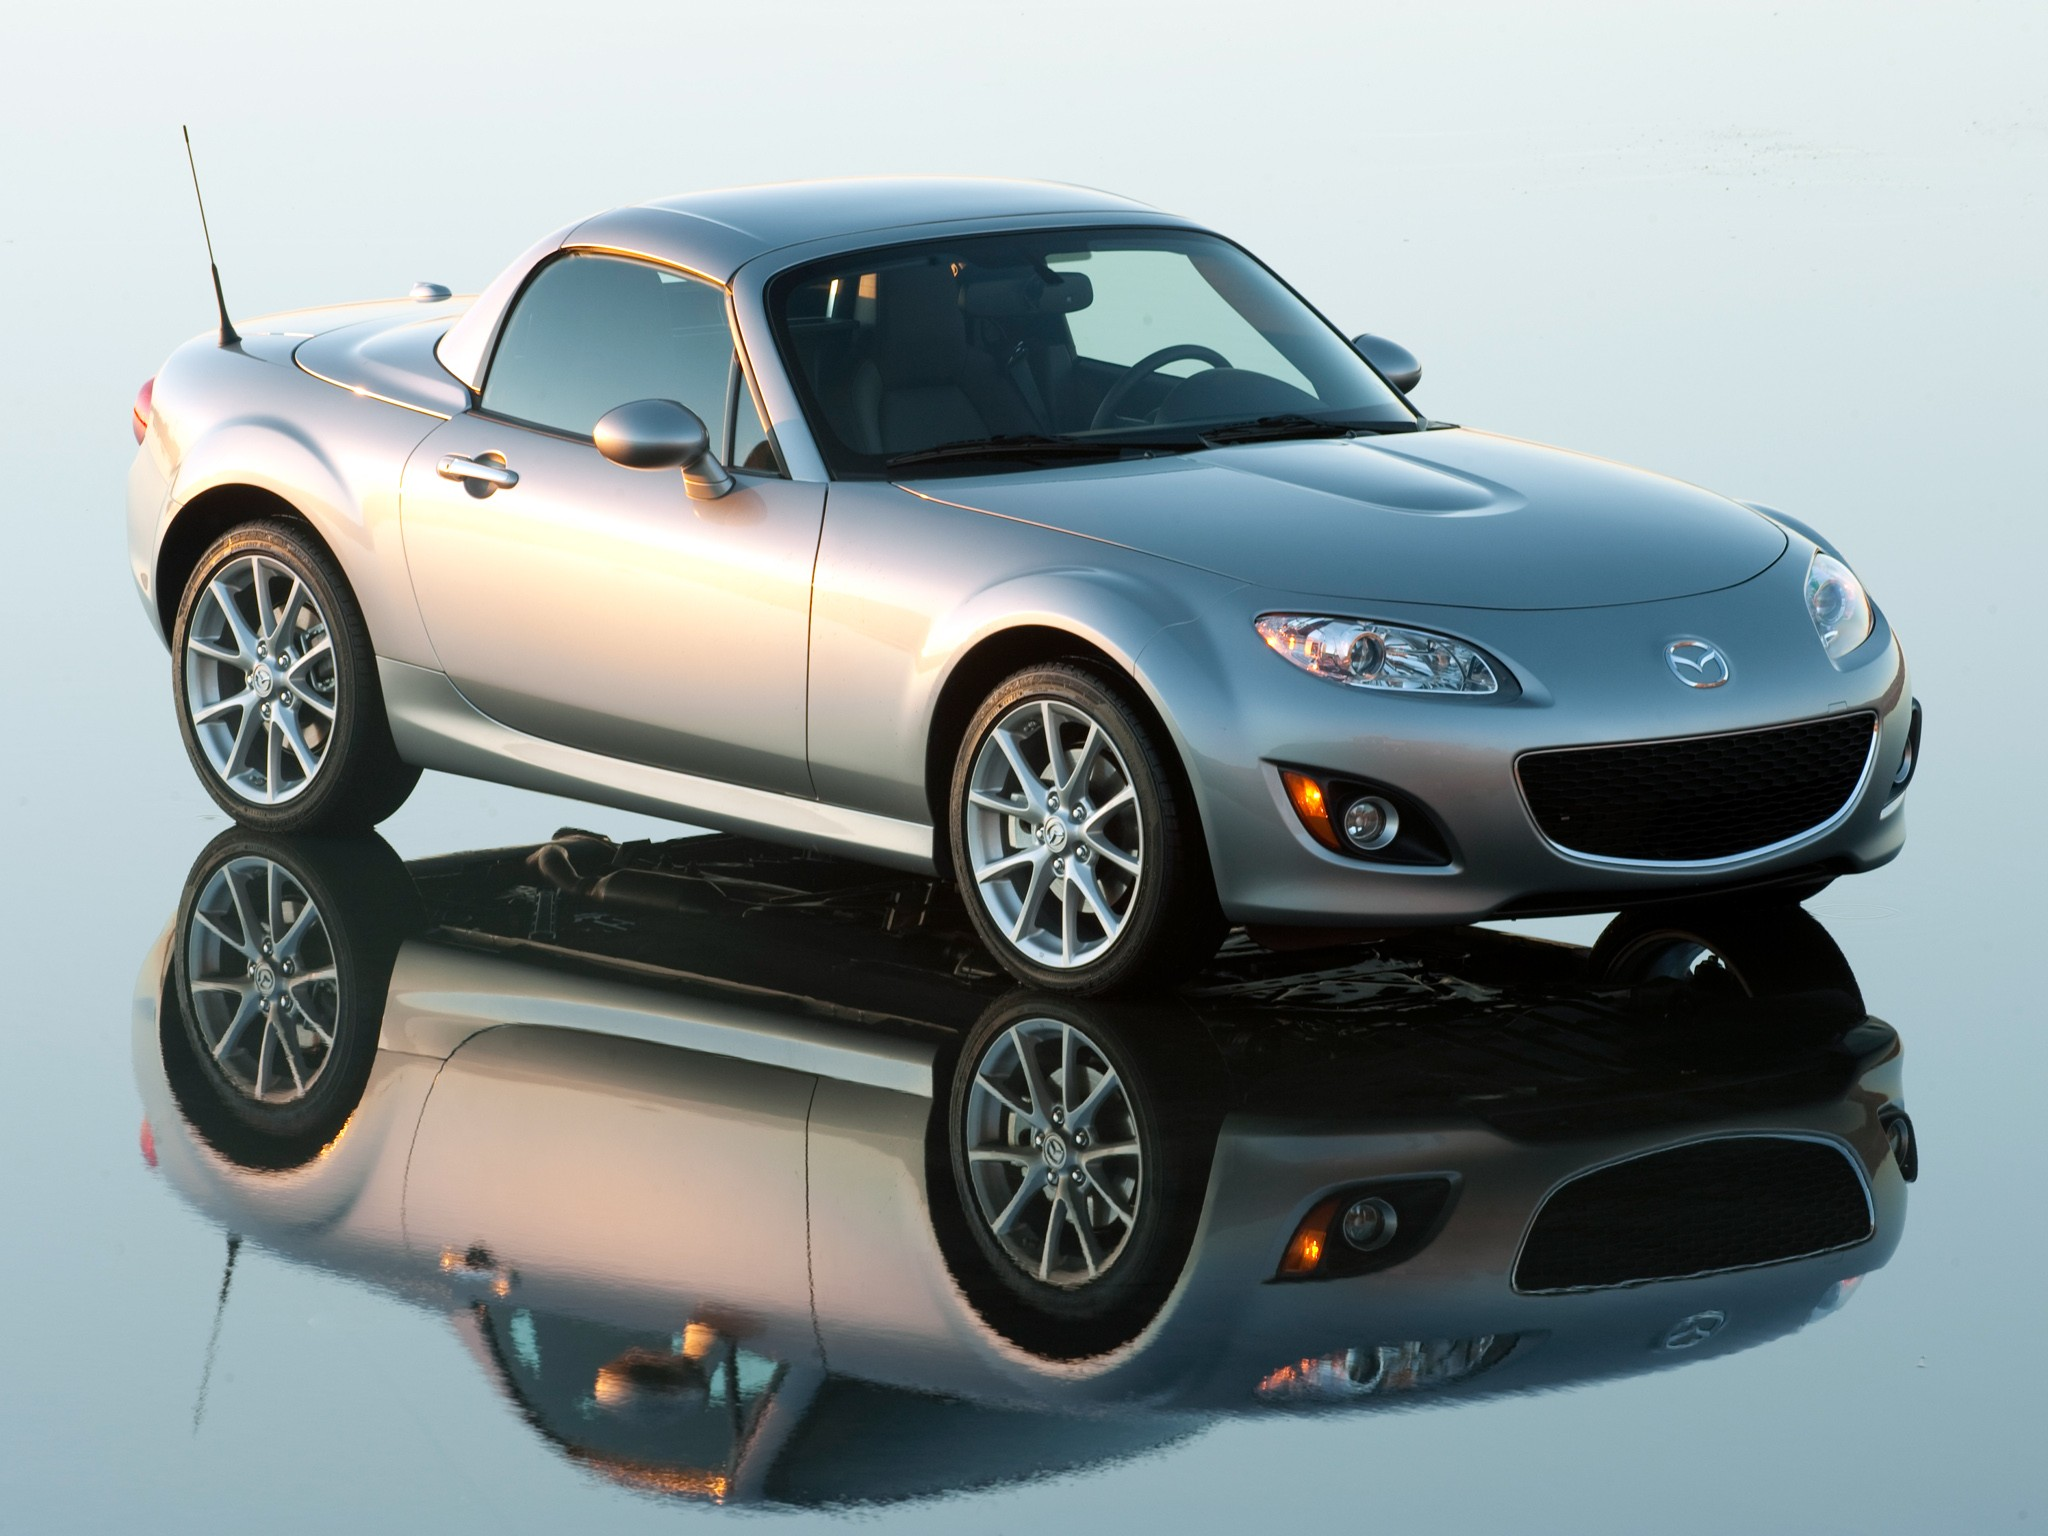 mazda mx 5 miata specs 2008 2009 2010 2011 2012 2013 2014 2015 autoevolution. Black Bedroom Furniture Sets. Home Design Ideas